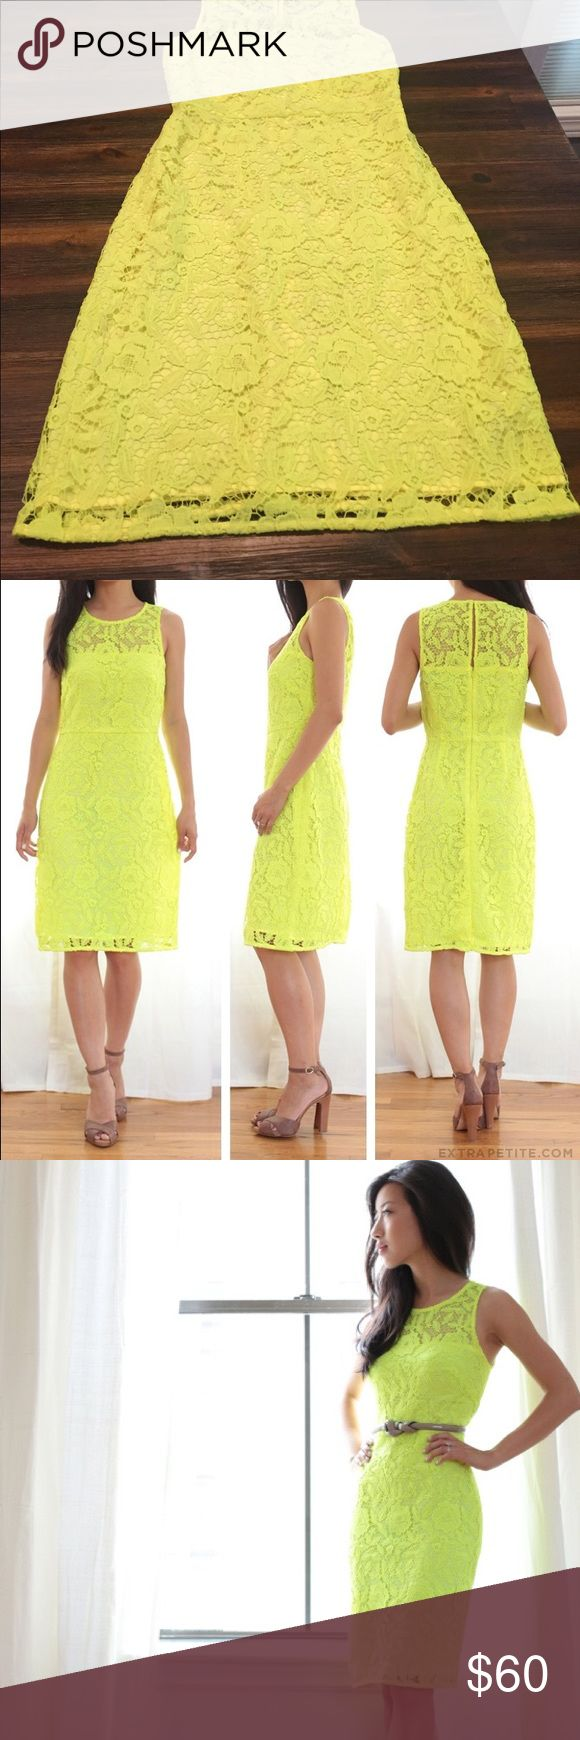 J.Crew Collection Neon Yellow Dress In EUC JCrew Collection Dress. Waist measures 13 in. Length top of neck front to bottom 32inches J. Crew Dresses